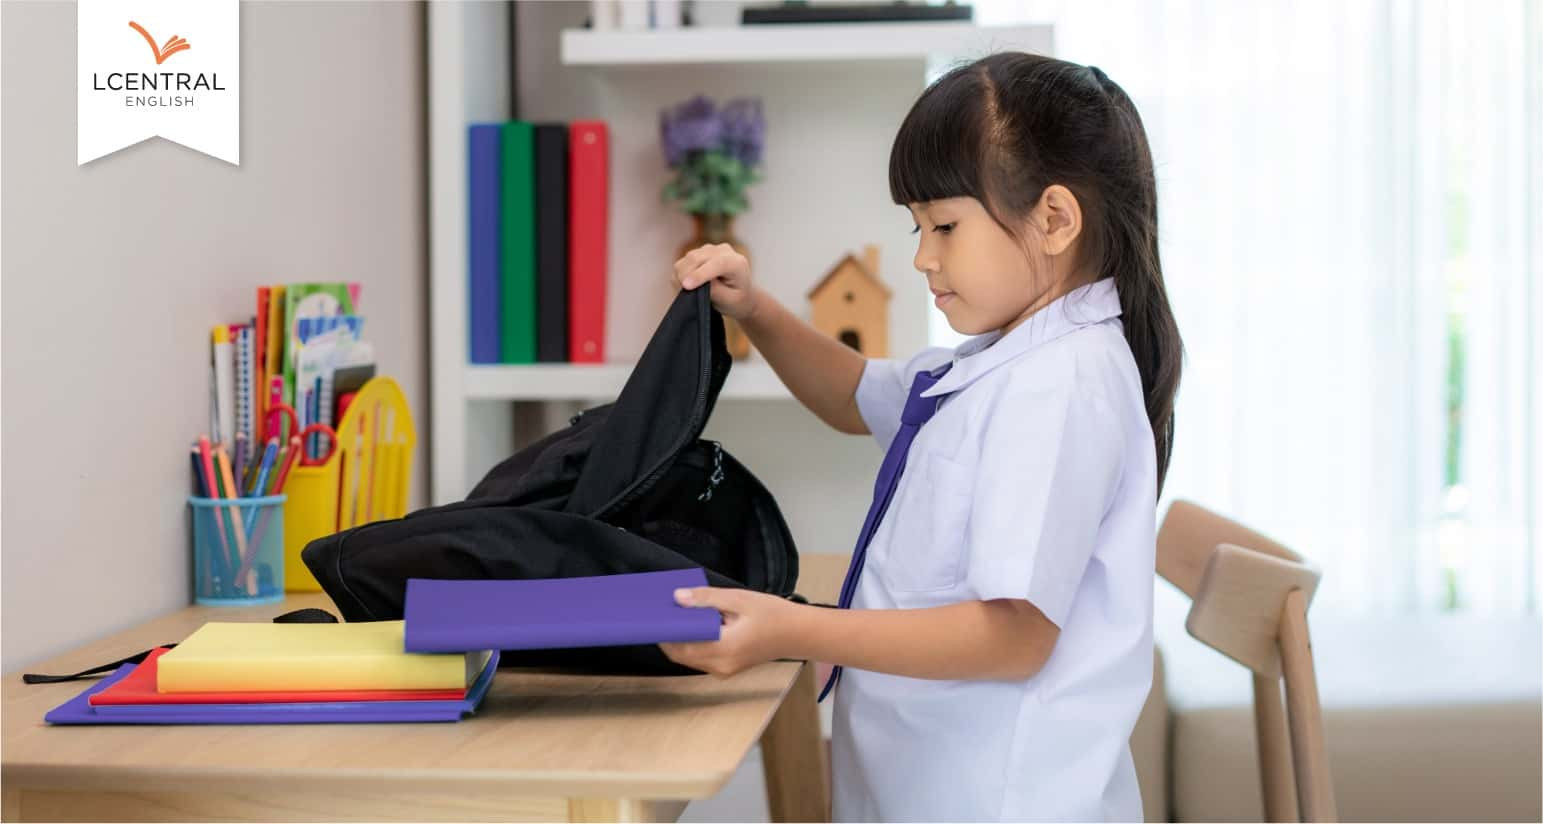 The child packing her bag and getting ready for primary school